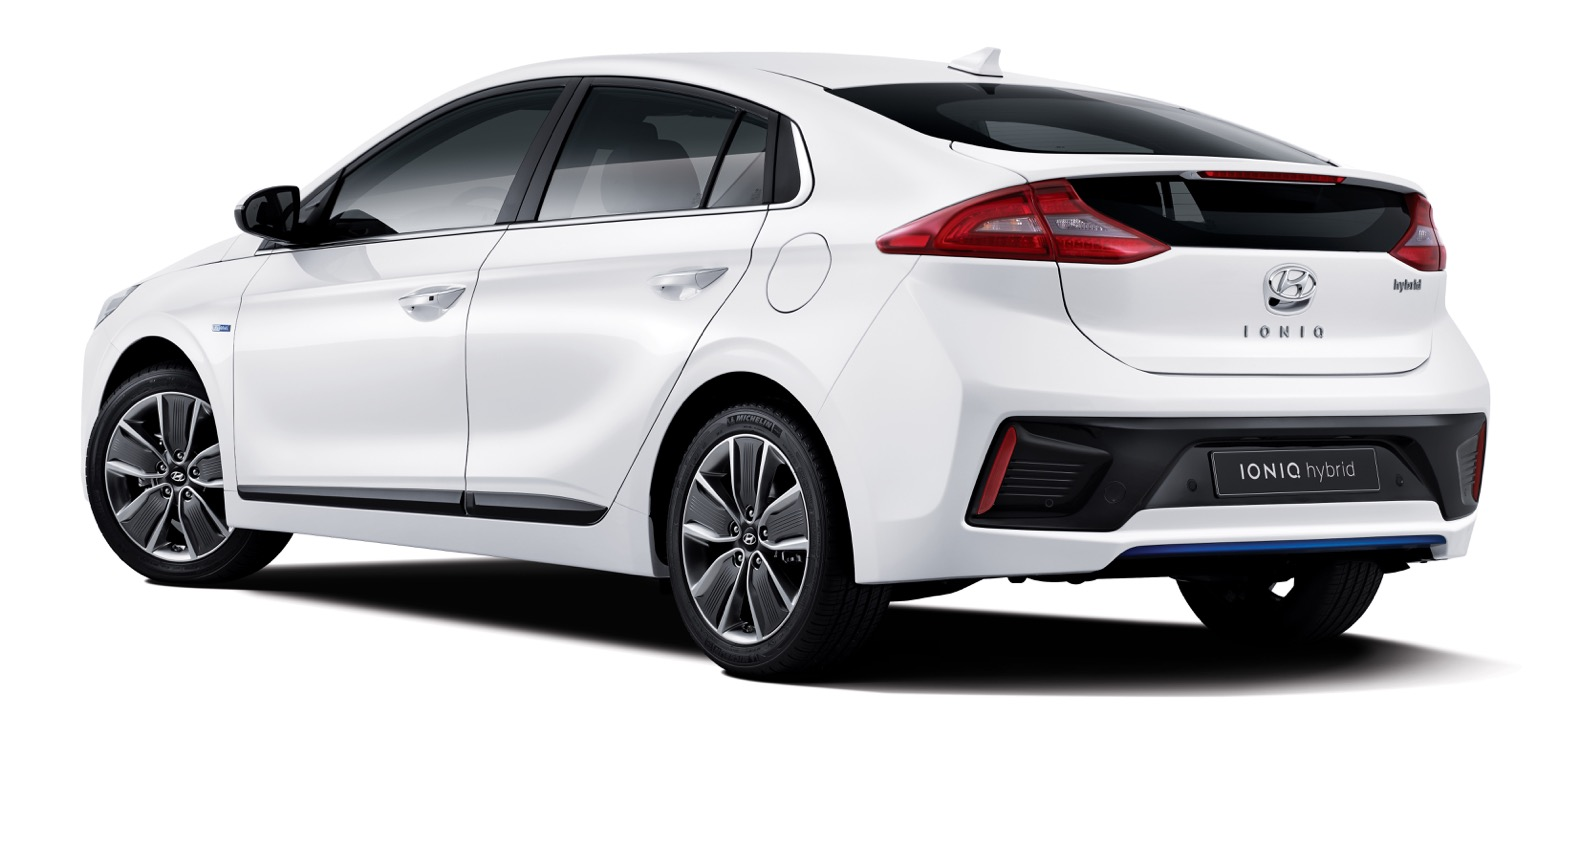 Hyundai S New Hybrid Ioniq Is The First Car To Take On Toyota Prius